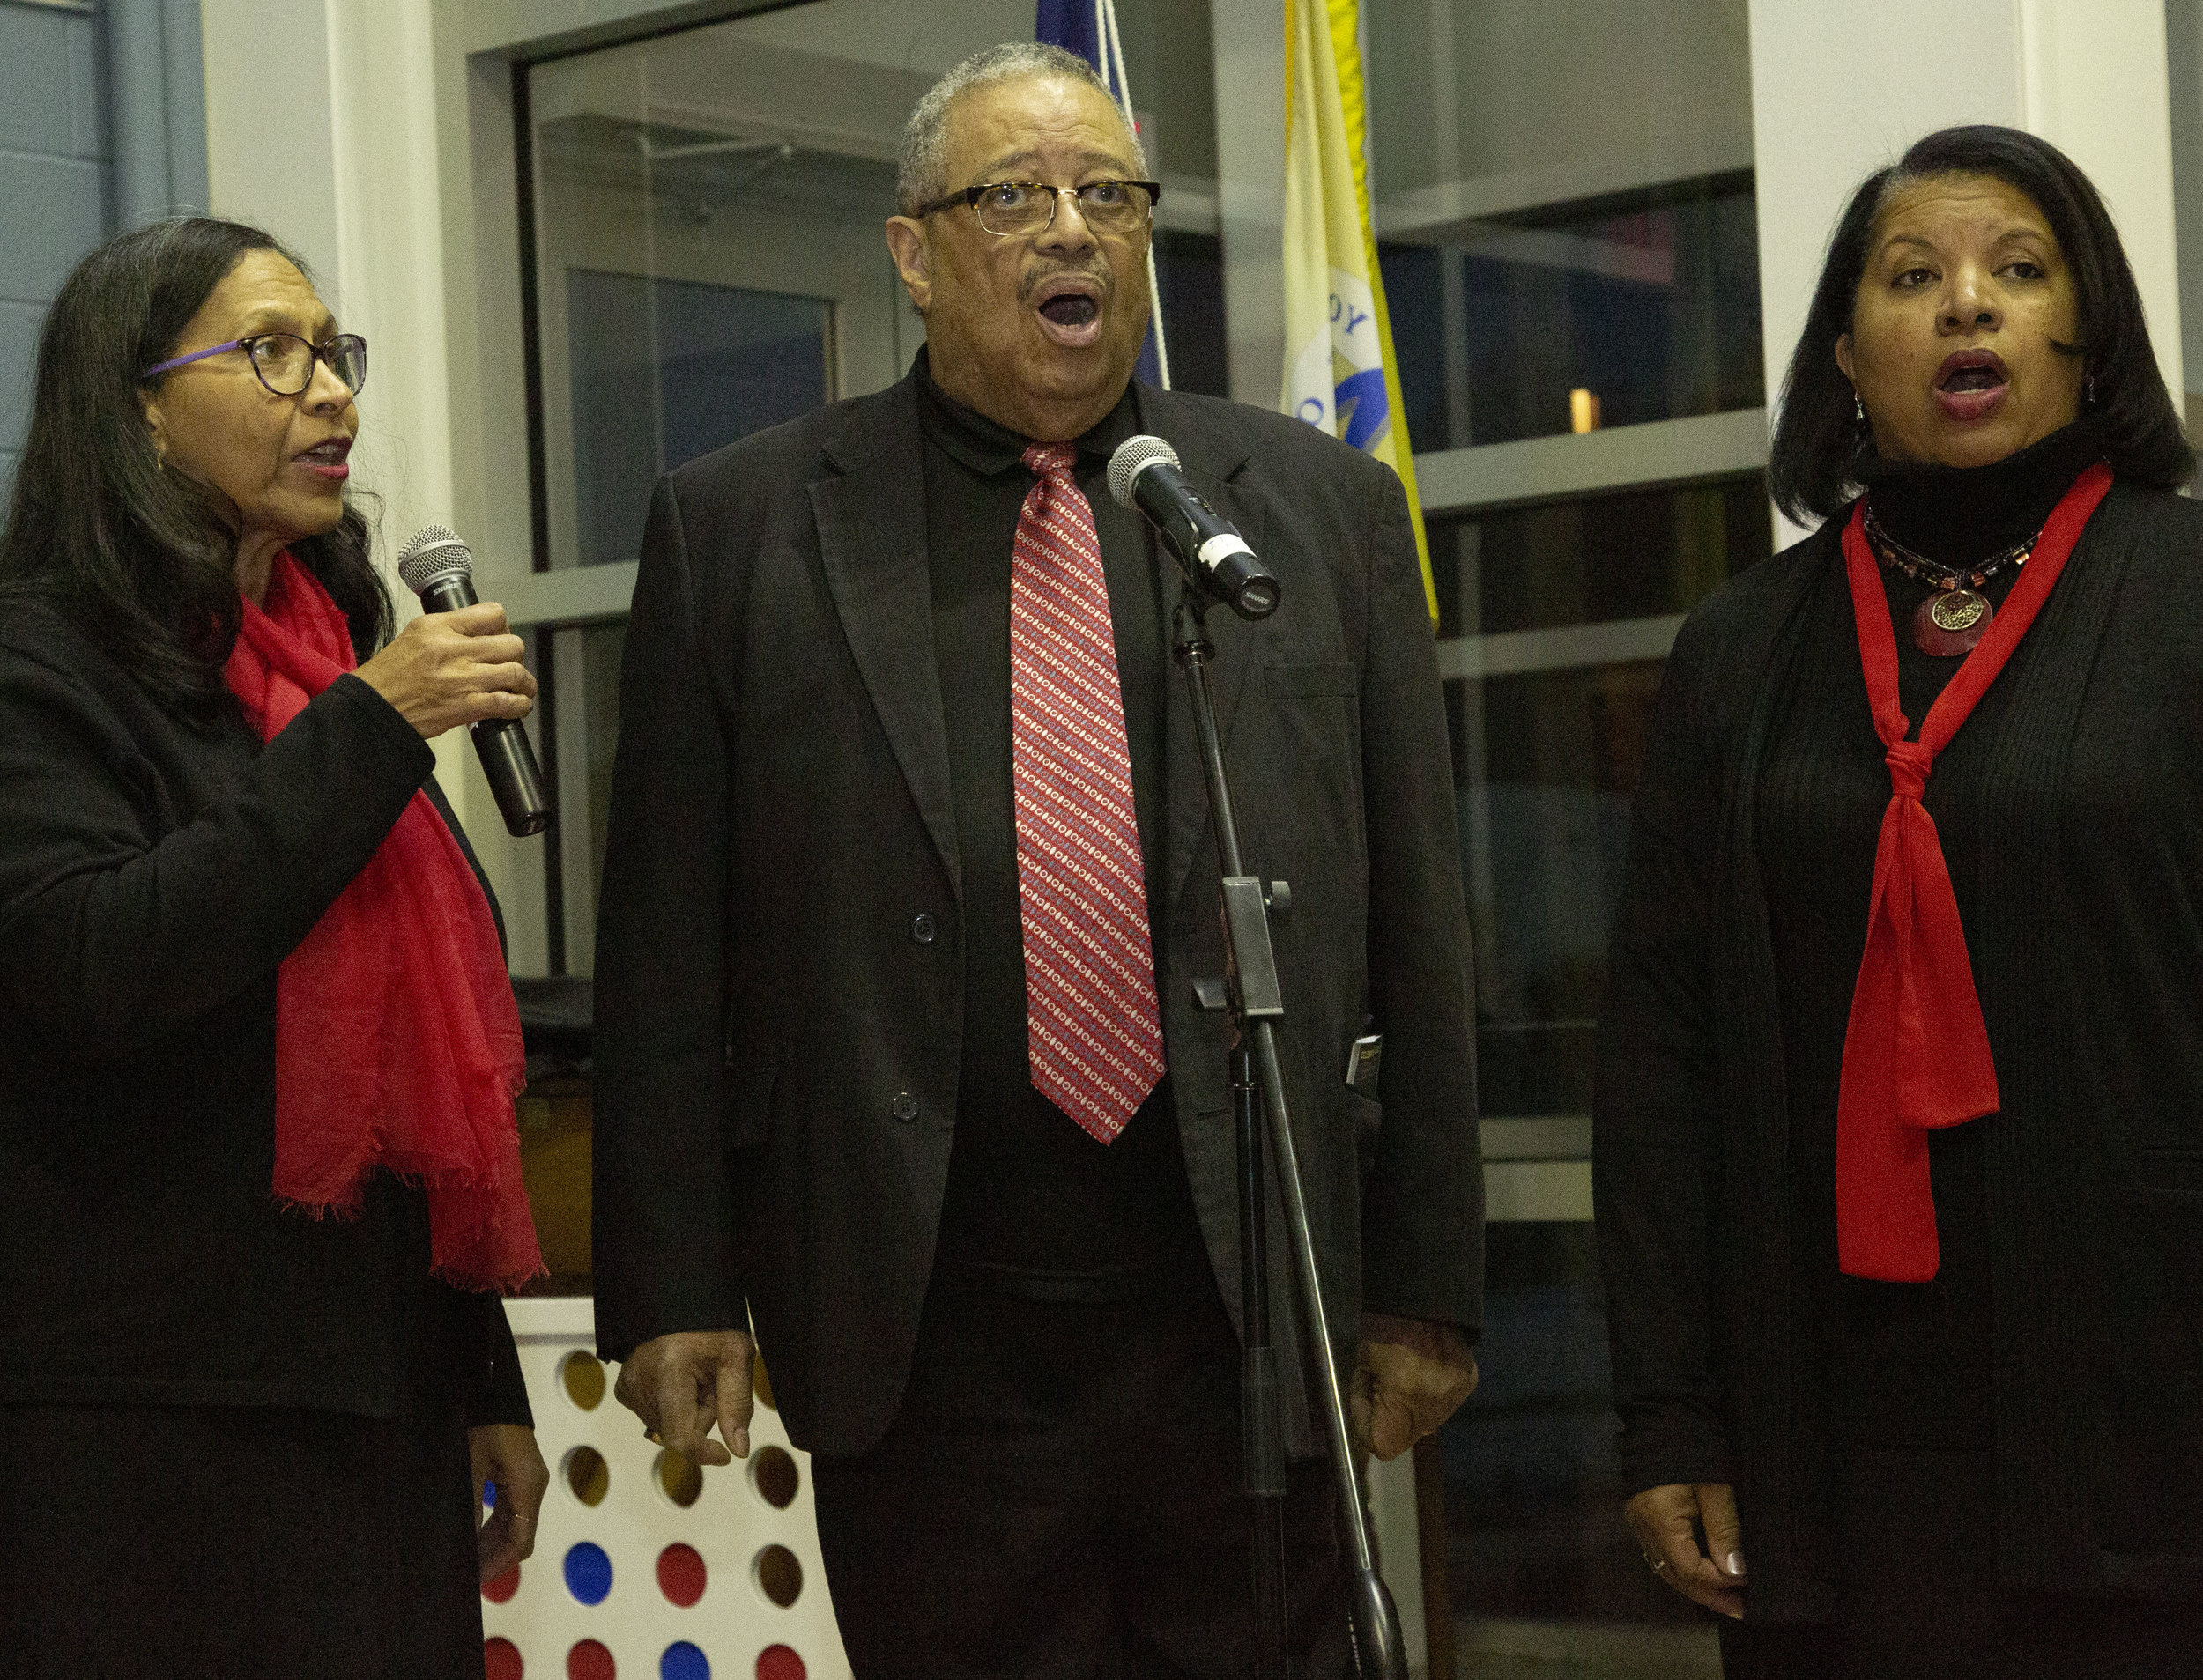 The community celebrates Dr. Martin Luther King Jr.'s birthday at Lord Fairfax Community College.